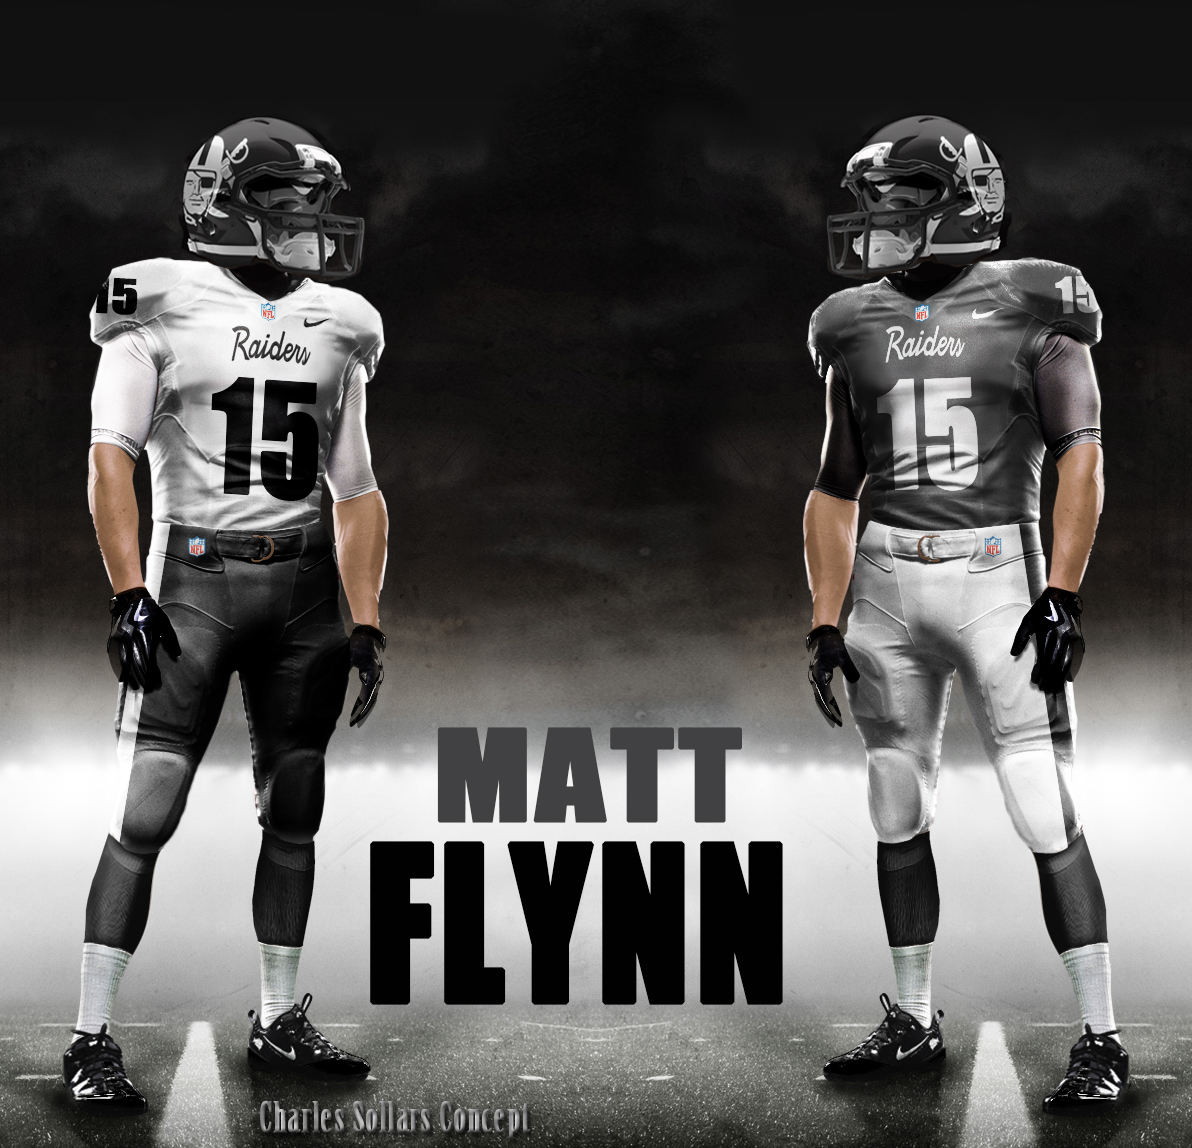 Raiders New Uniforms 2014 Matt flynn raiders 3